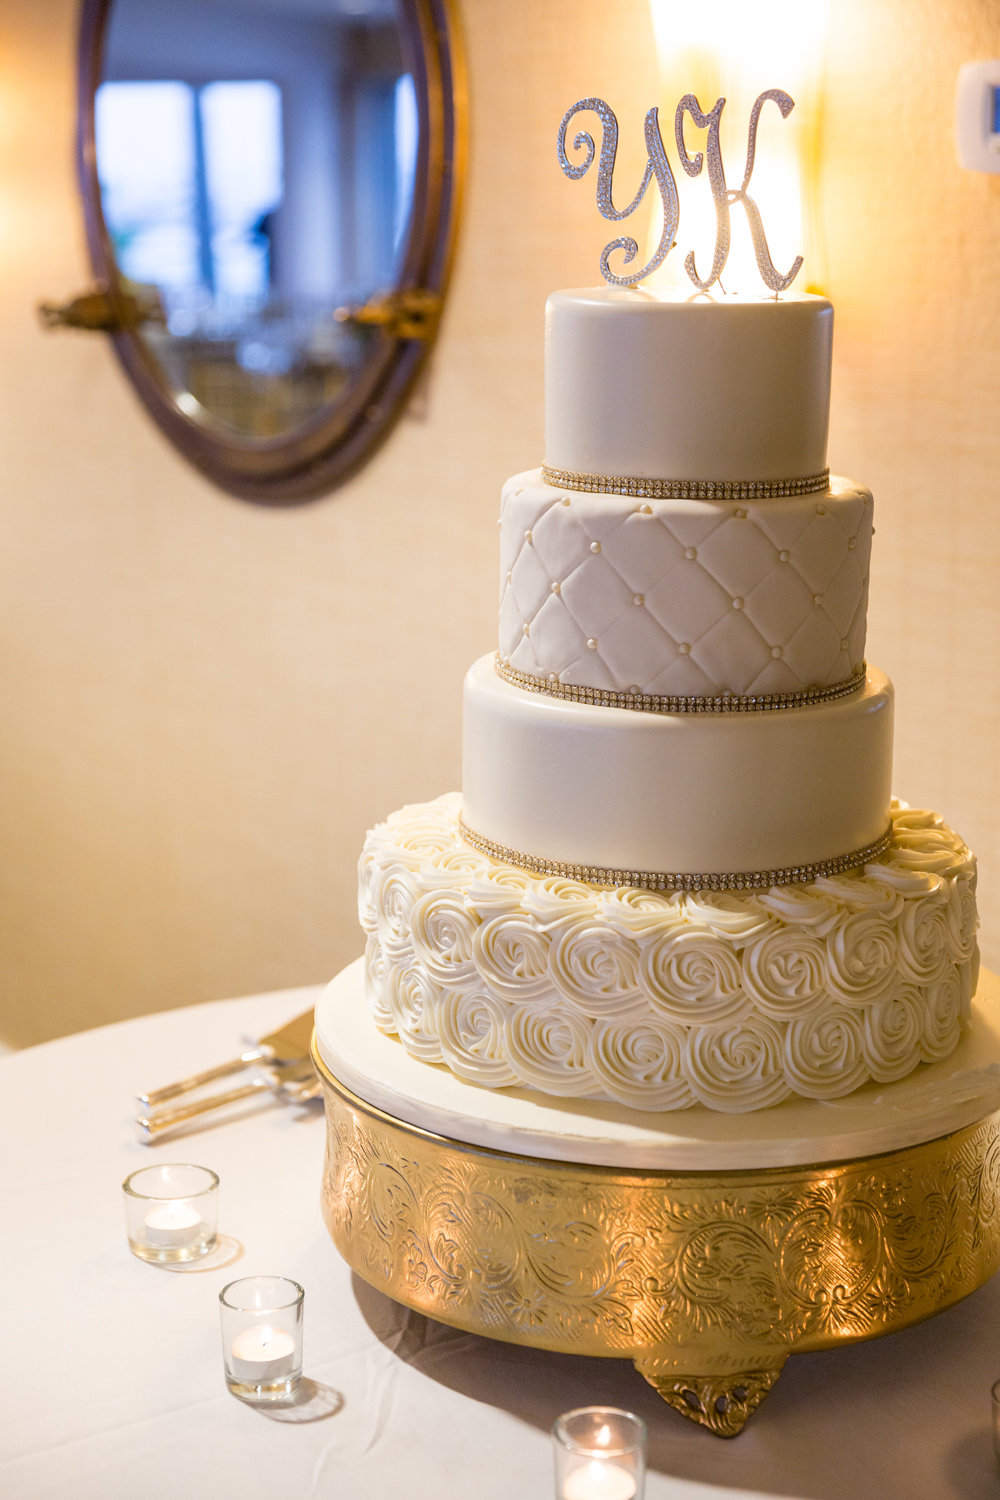 d60b4-lively-navy-yellow-harbor-wedding-classic-tiered-wedding-cake-with-crystal-monogram-topper.jpg